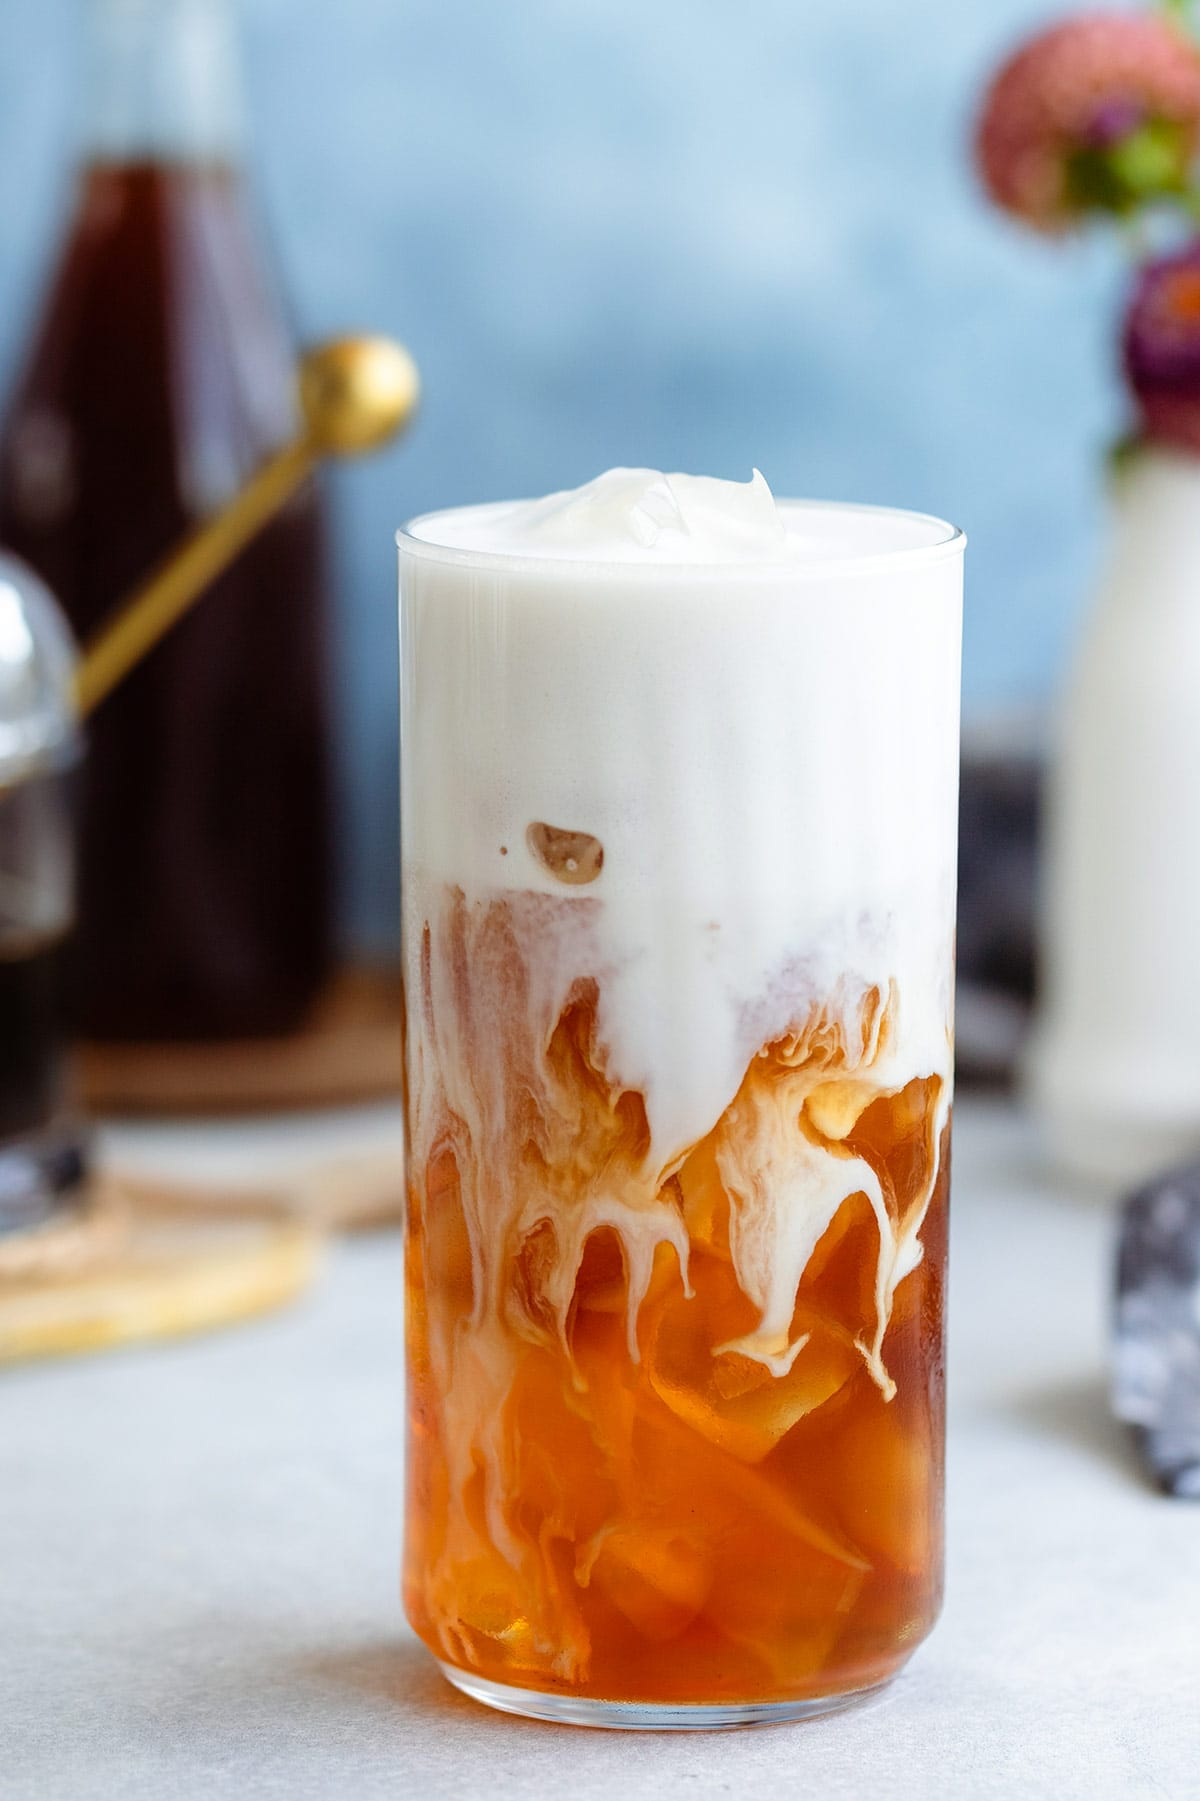 Earl grey in a tall glass with ice and frothy milk on top slowly blending together.